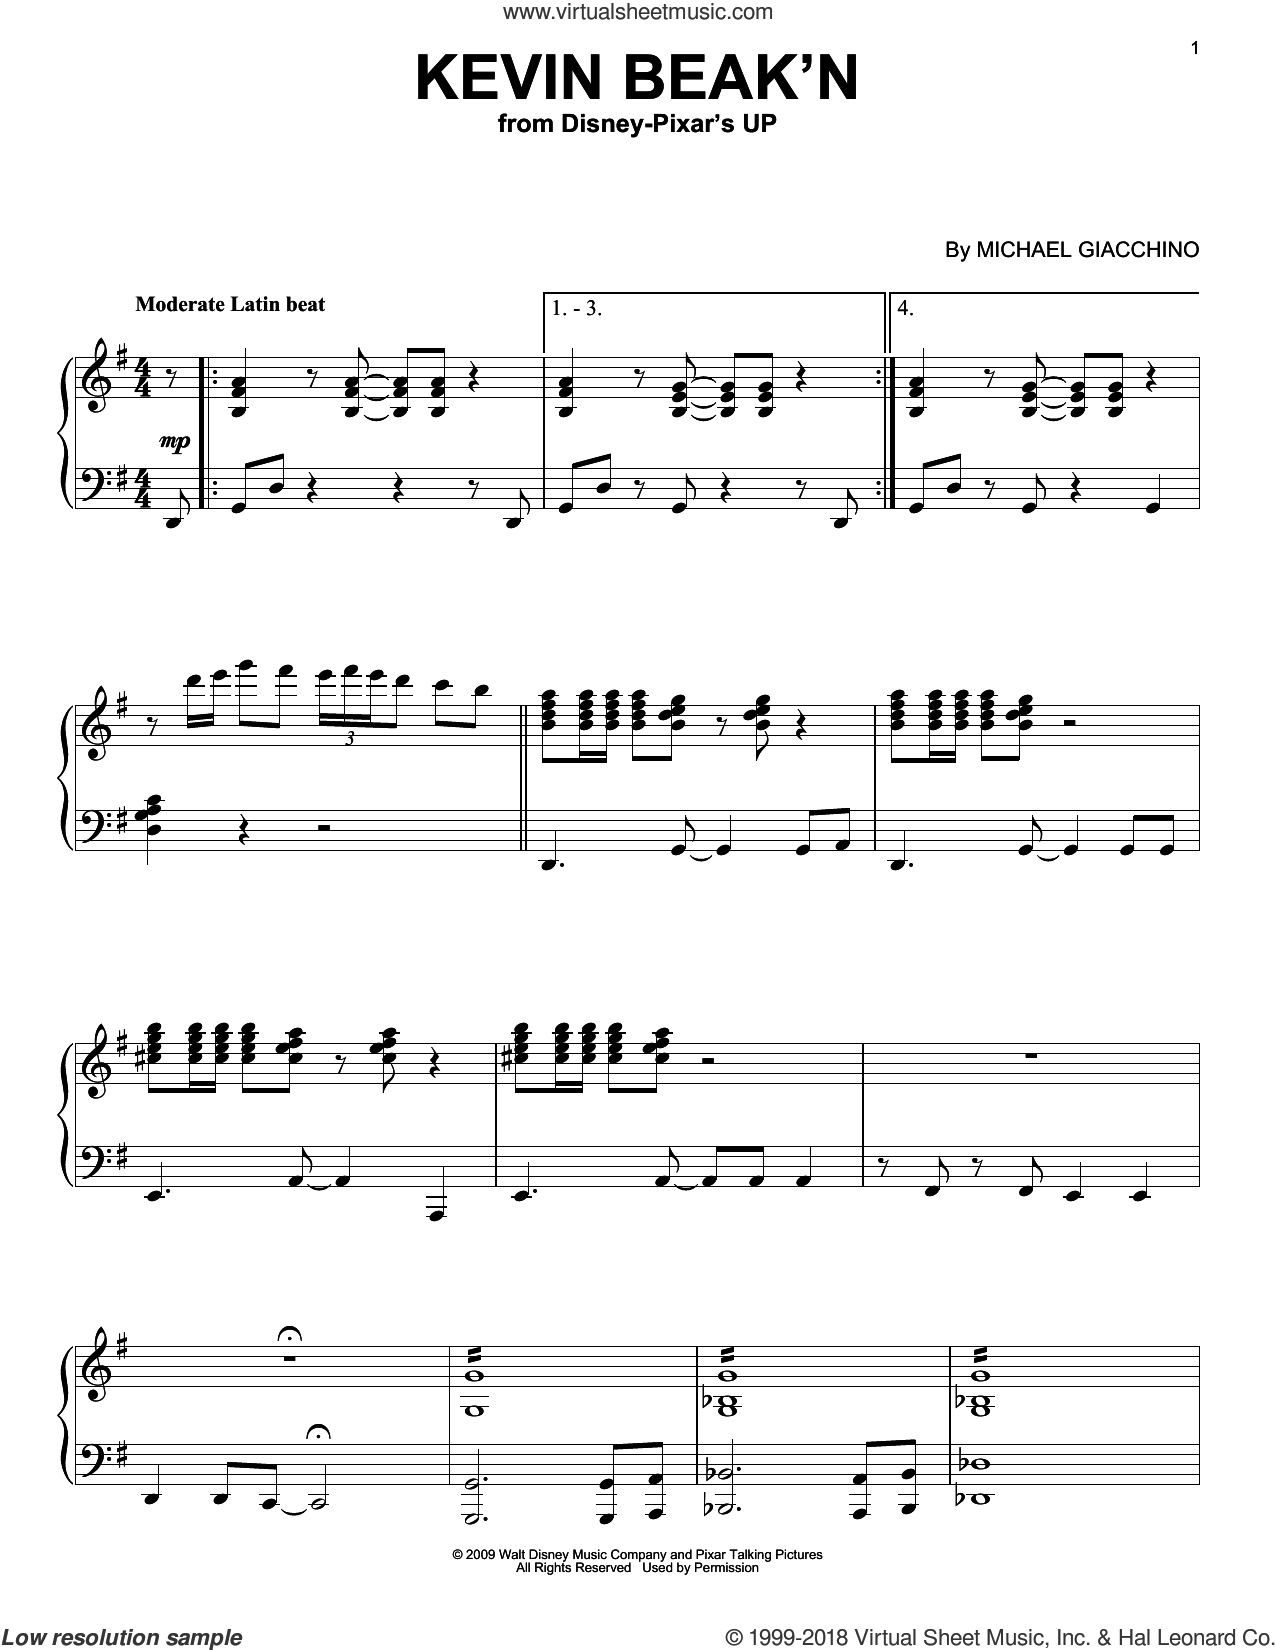 Kevin Beak'n sheet music for piano solo by Michael Giacchino and Up (Movie), intermediate skill level